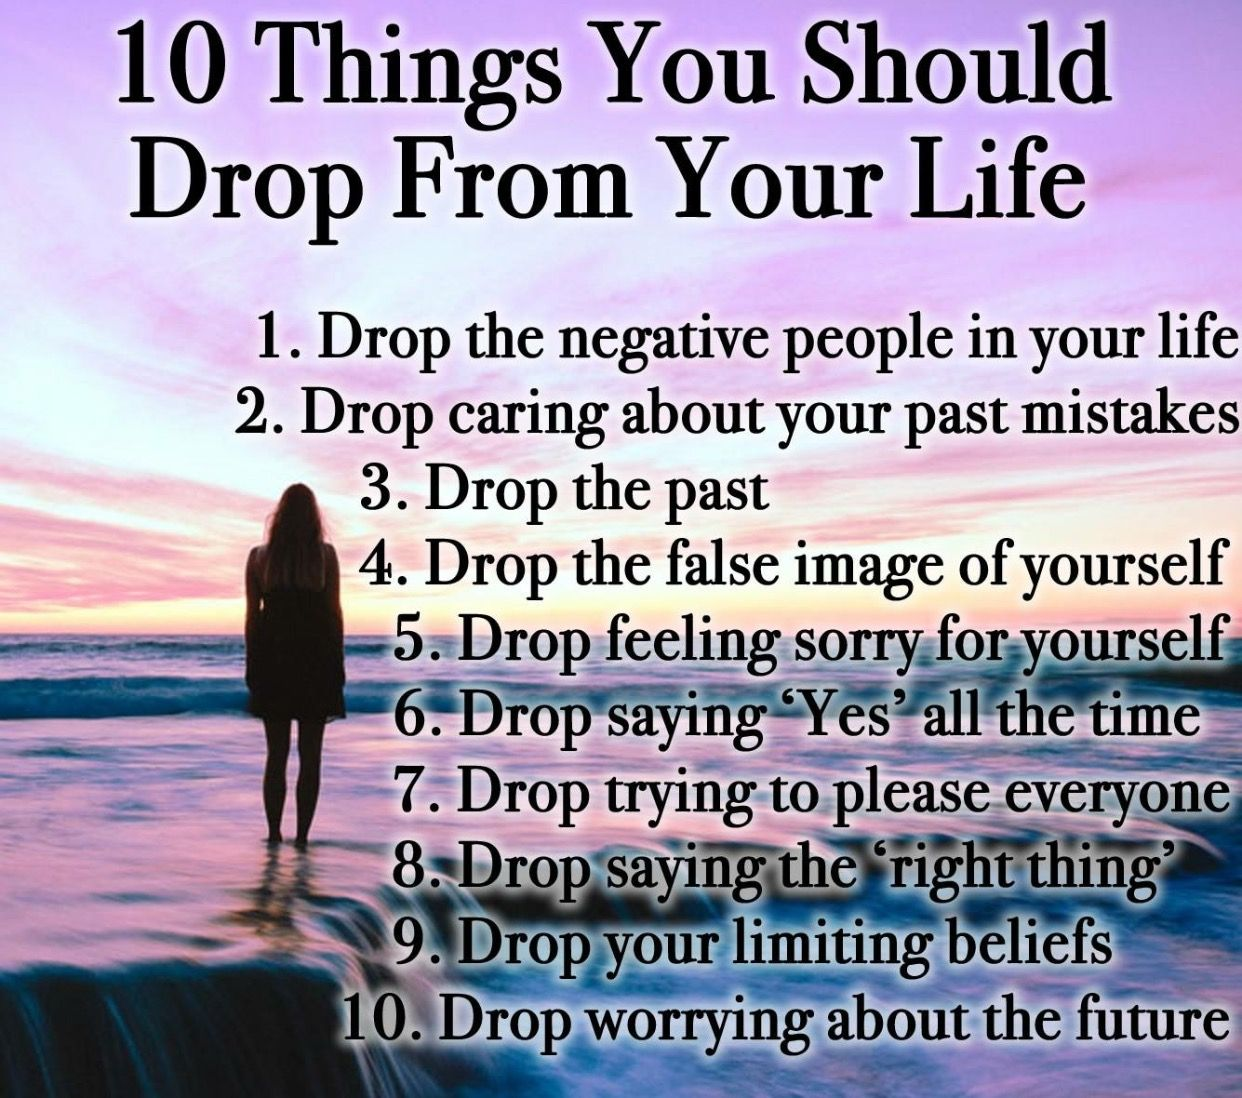 Pin By N Dunn On Quotes Feeling Sorry For Yourself Positive Quotes Negative People